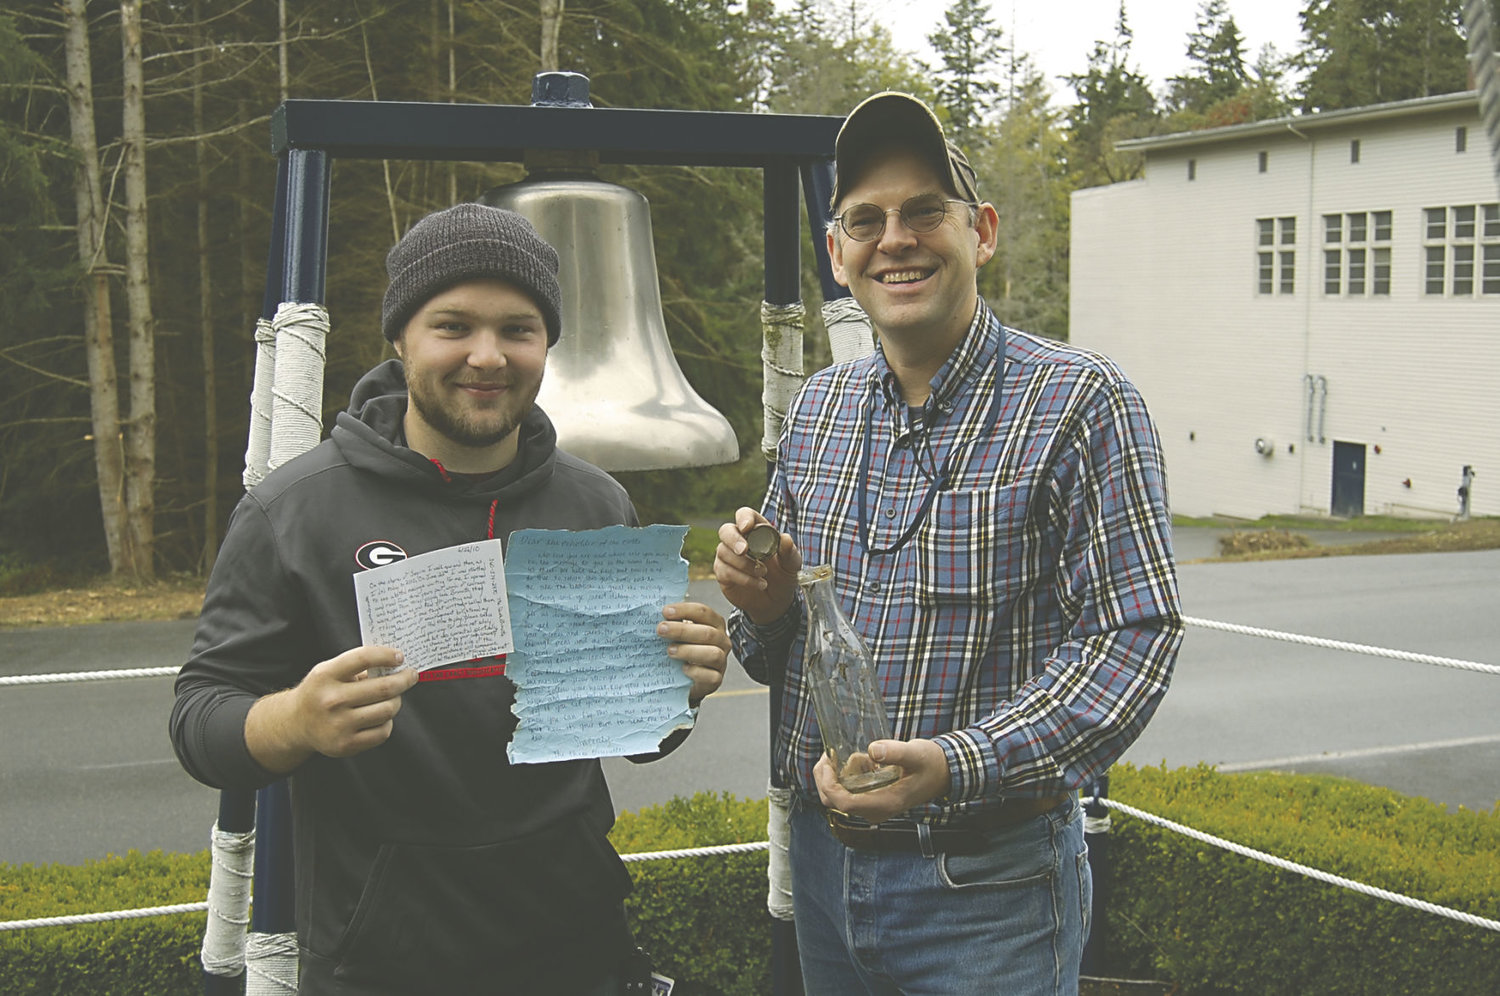 "A classic ""message in a bottle"" was located Oct. 13 along the shore of Indian Island on Port Townsend Bay. The bottle and note are displayed by Ben Carlson (left), Naval Facilities Engineering Command archaeological assistant, and Dave Grant, NAVFAC archaeologist. U.S. Navy photo by Phillip Guerrero"